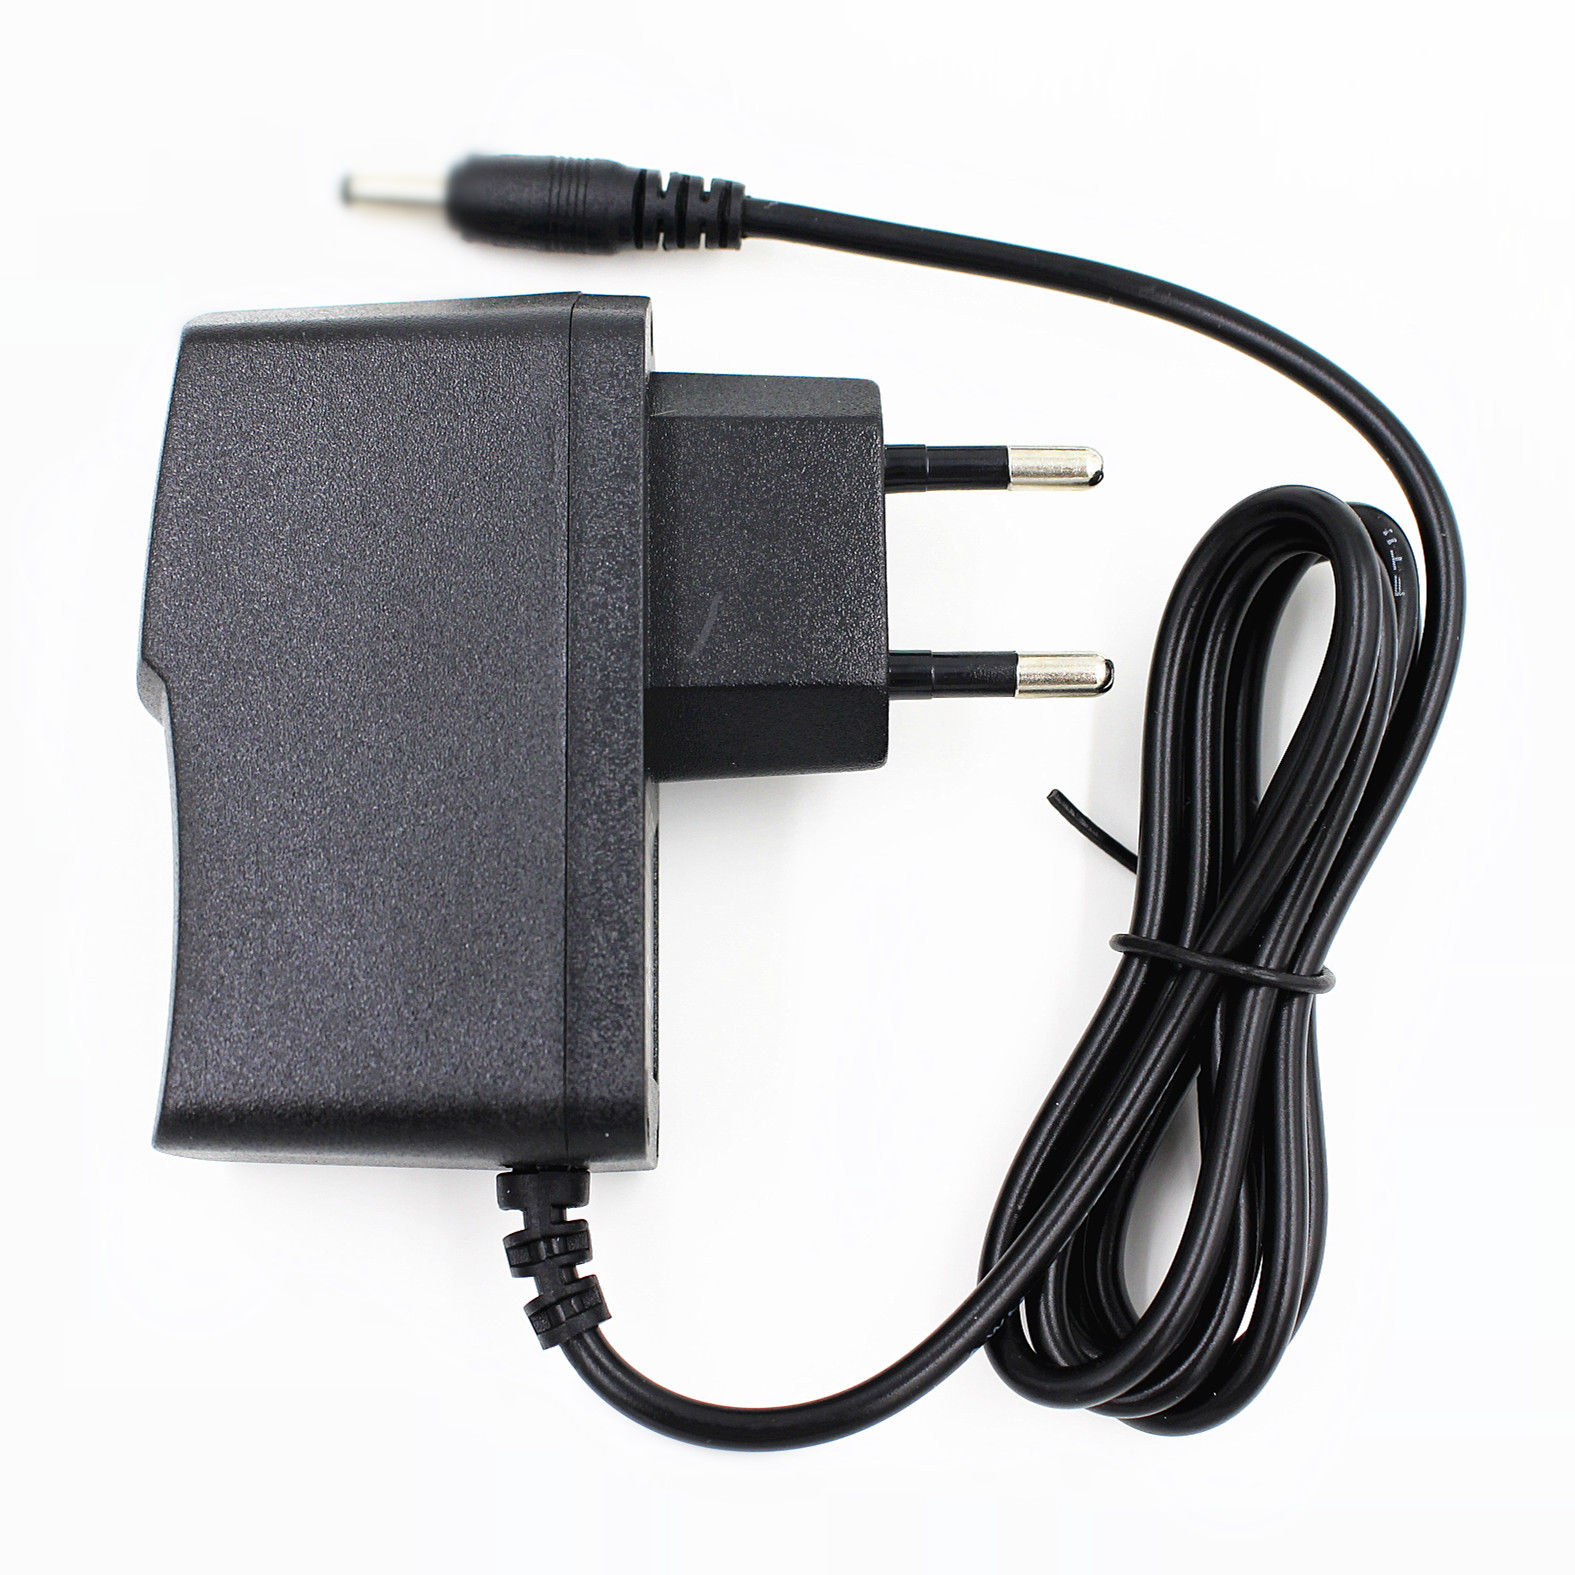 US ACDC Power Adapter Charger Cord For Sony cd walkman d-e jo11 For Sony Ebook Reader PRS-600 700 PRS-900 PRS-505